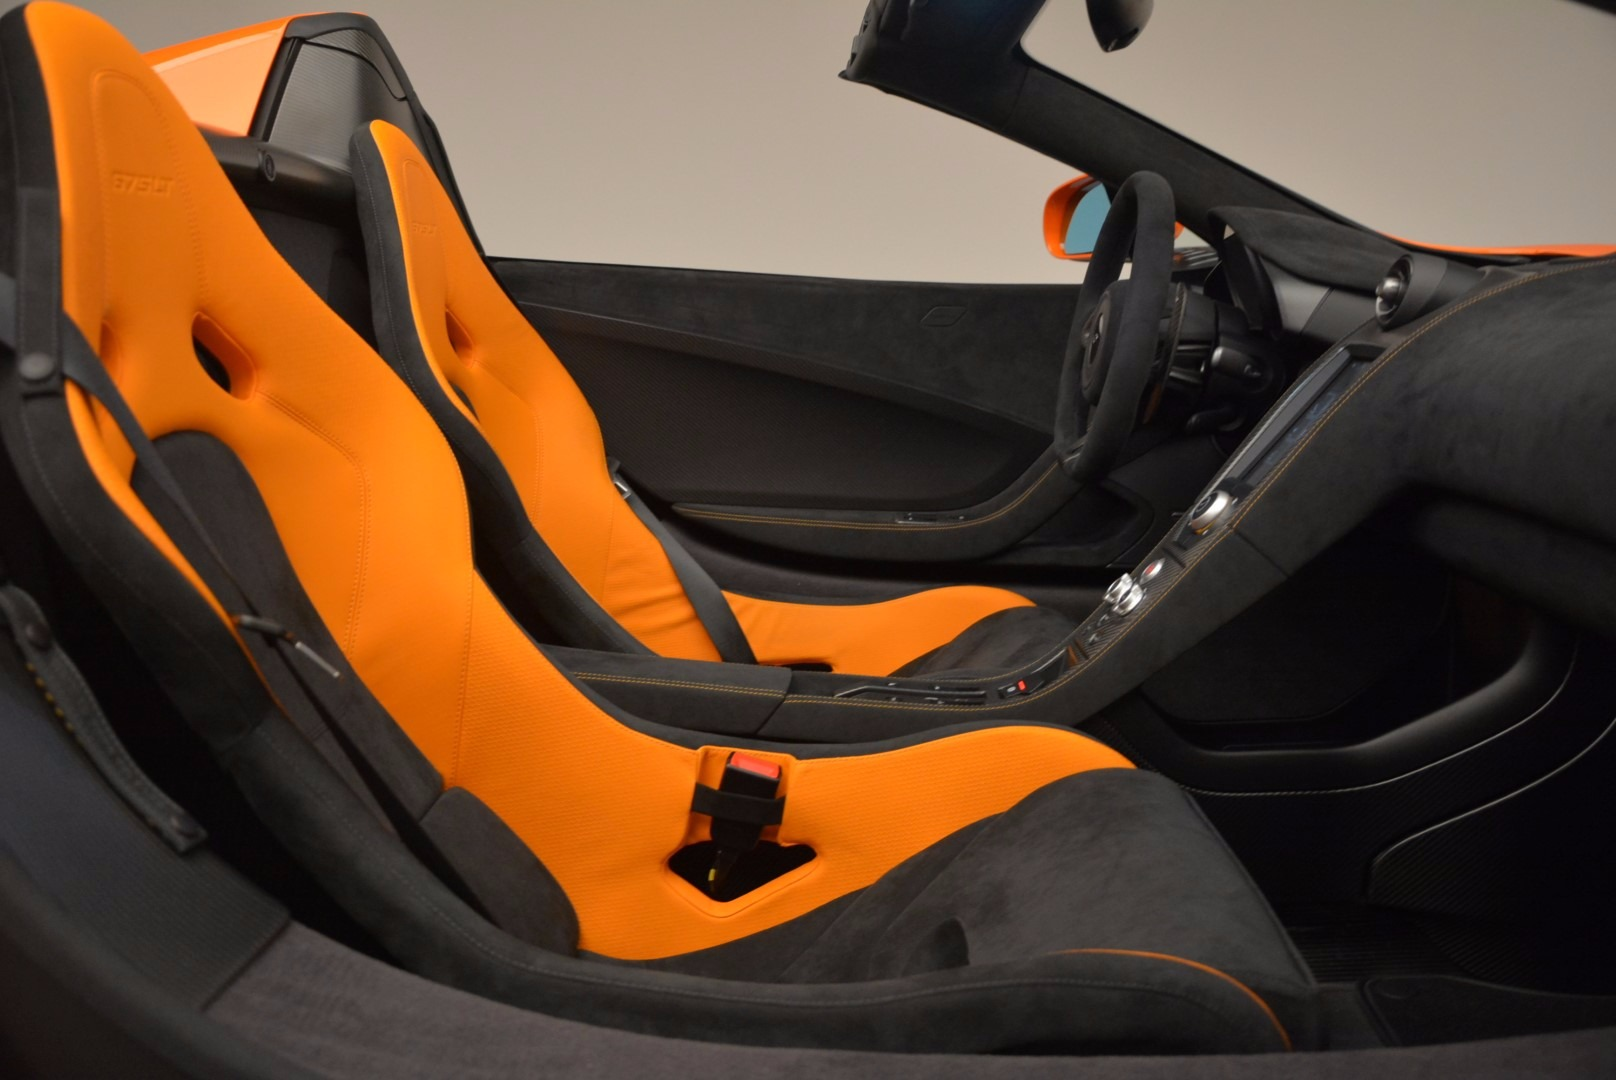 Used 2016 McLaren 675LT Spider Convertible For Sale In Greenwich, CT. Alfa Romeo of Greenwich, 3159 1150_p26